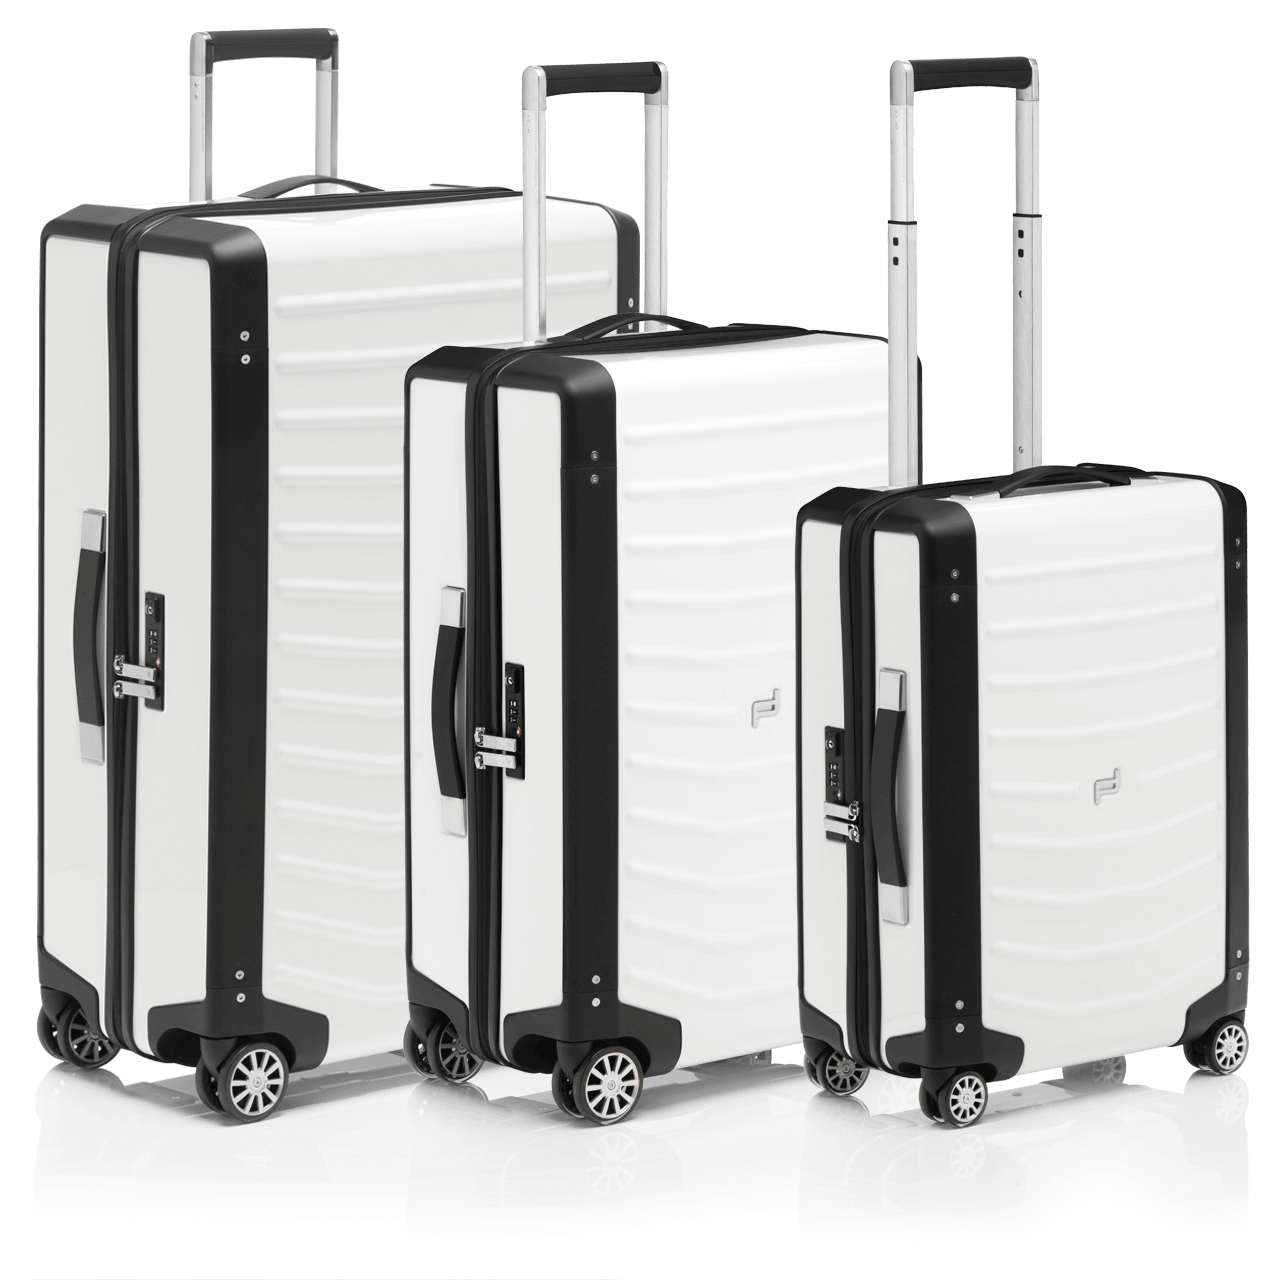 ROADSTER HARDCASE SERIES SET S/M/L - фото 1